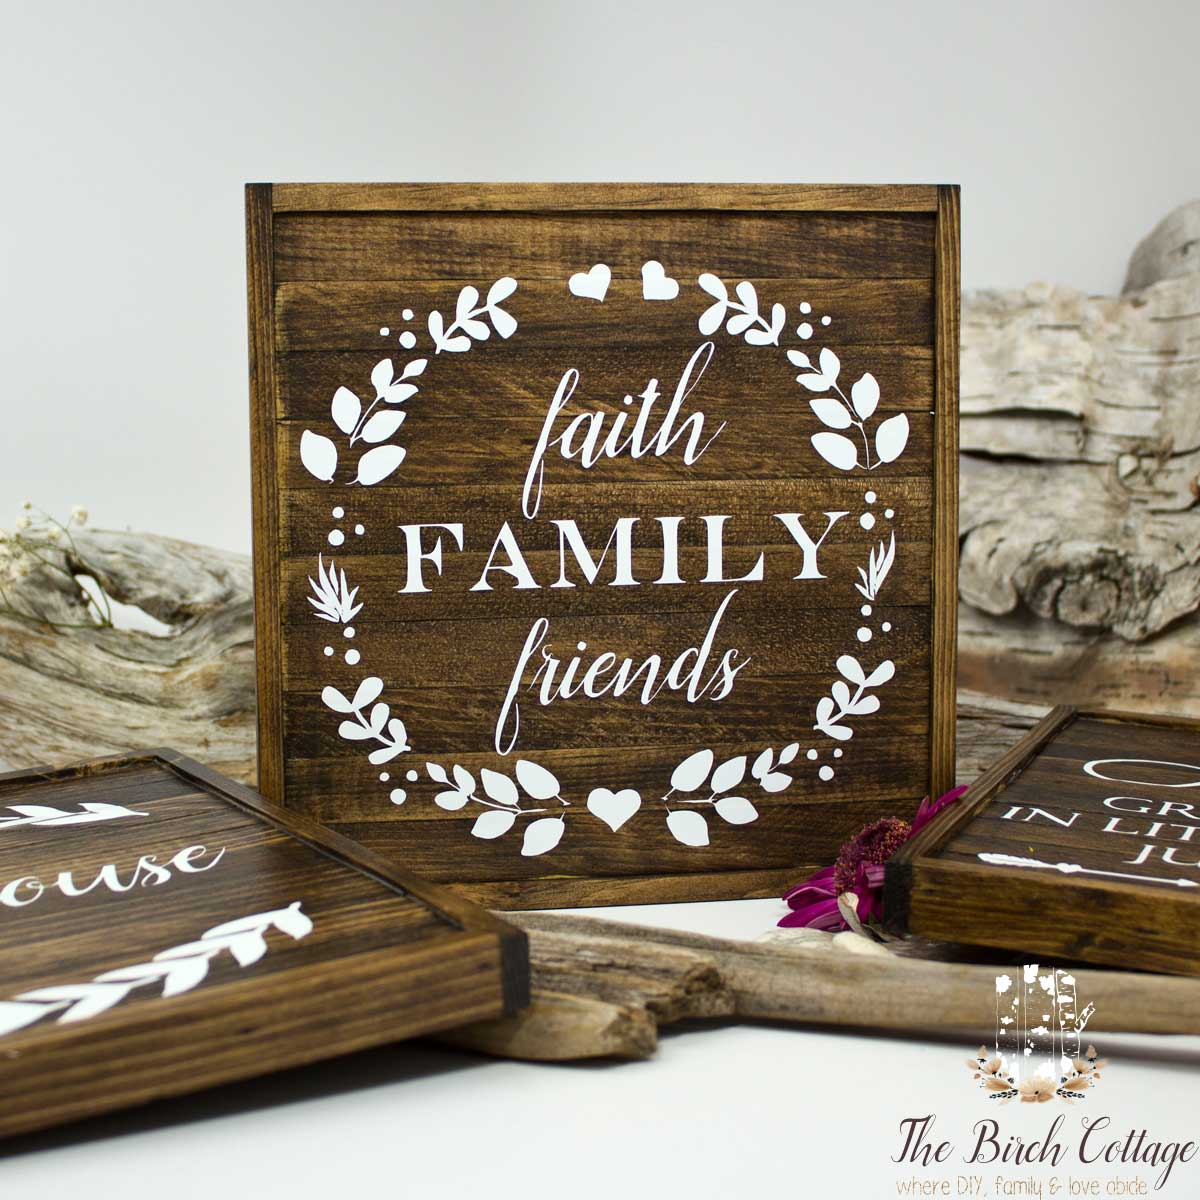 The Birch Cottage Shop is Now Open on Etsy - Faith Family Friends Handmade Rustic Wood Sign